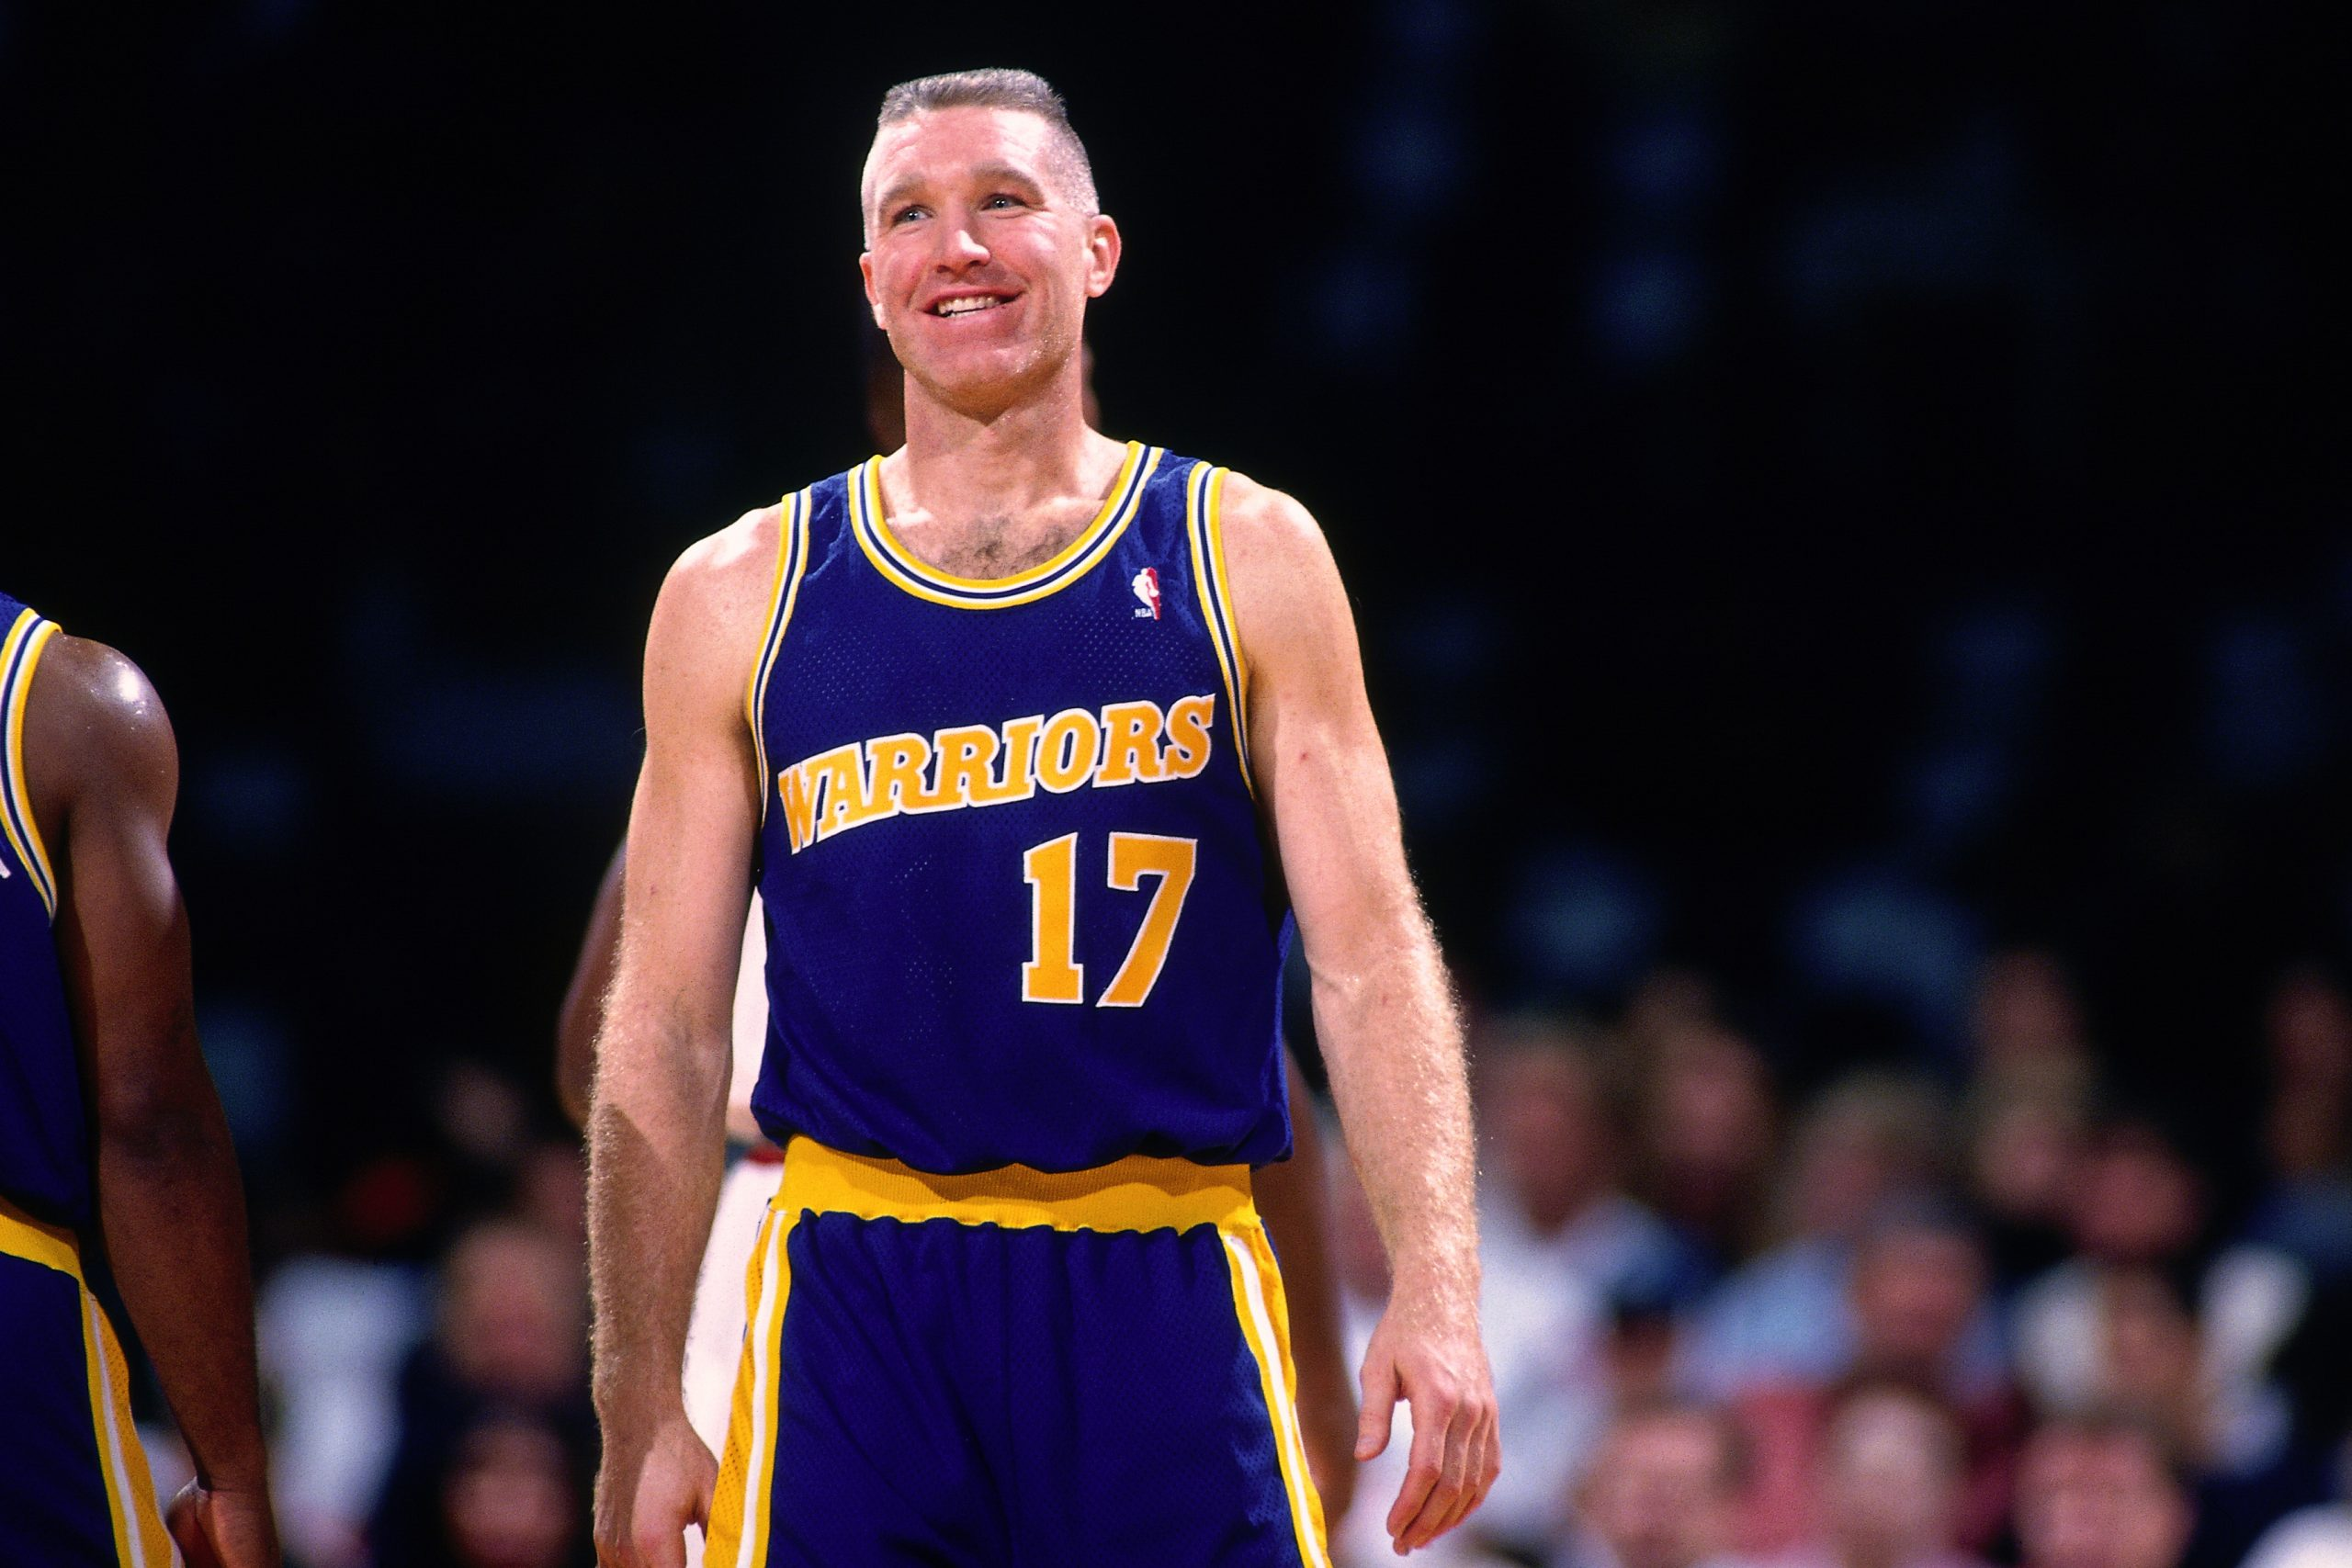 Chris Mullin pone en perspectiva la dinastía de los Warriors